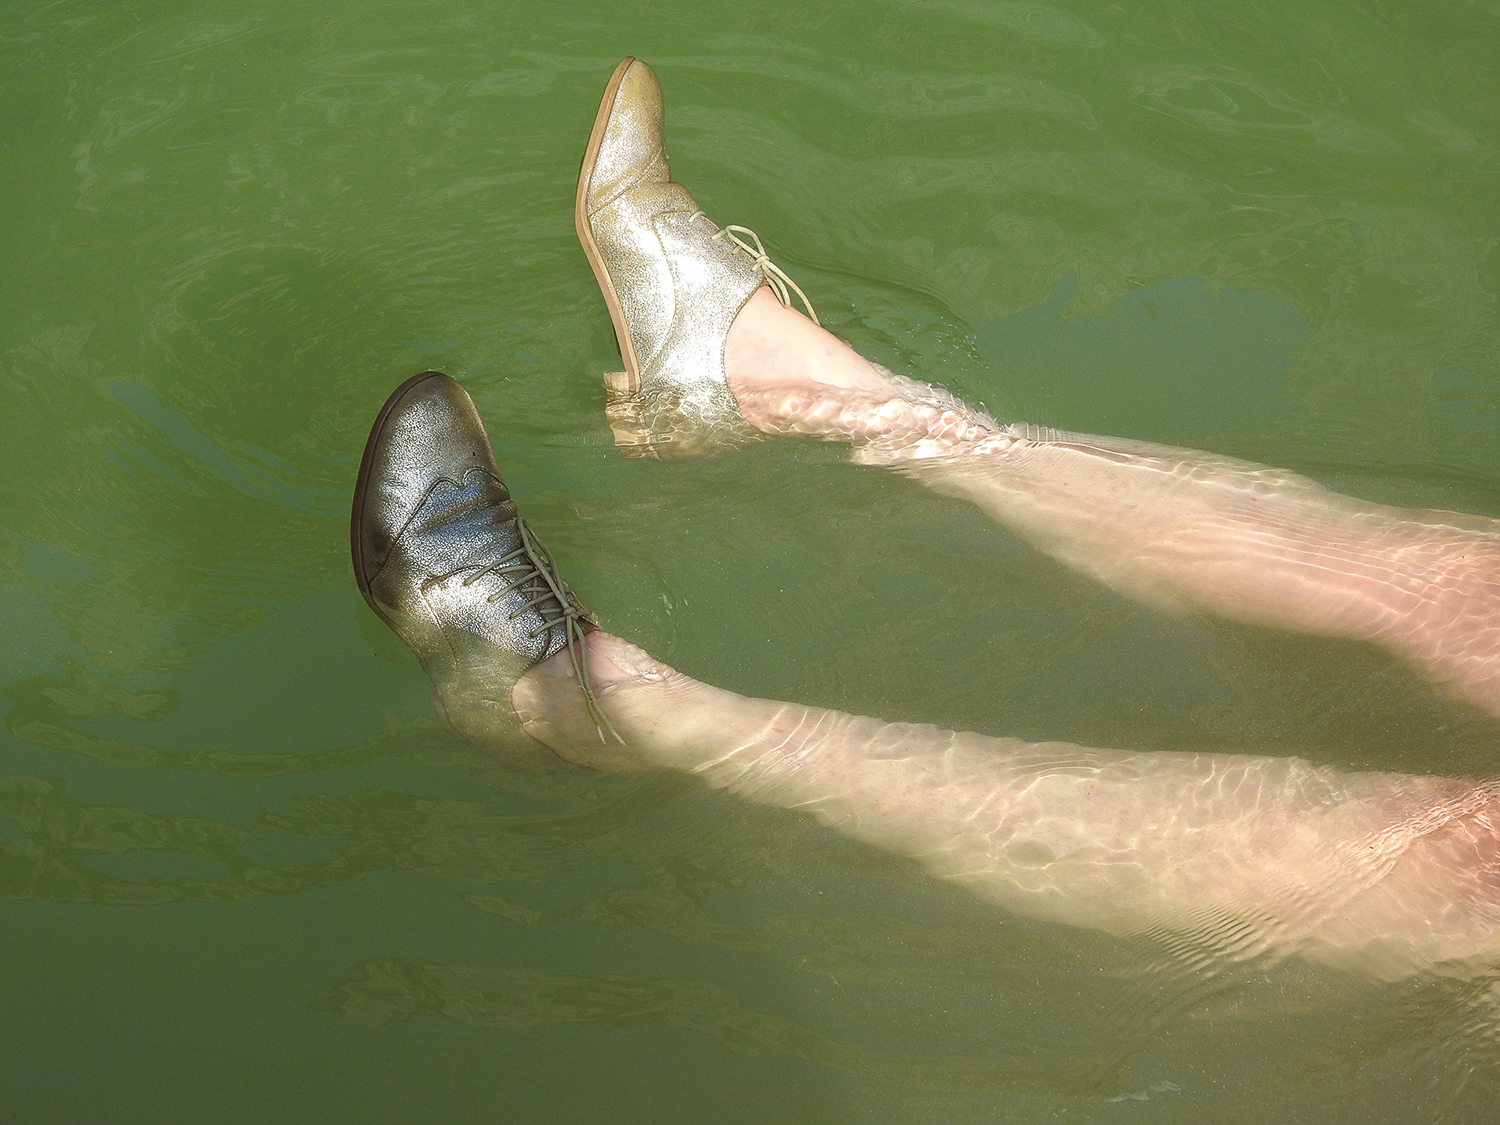 Photograph of legs with worn gold shoes floating in greenish water